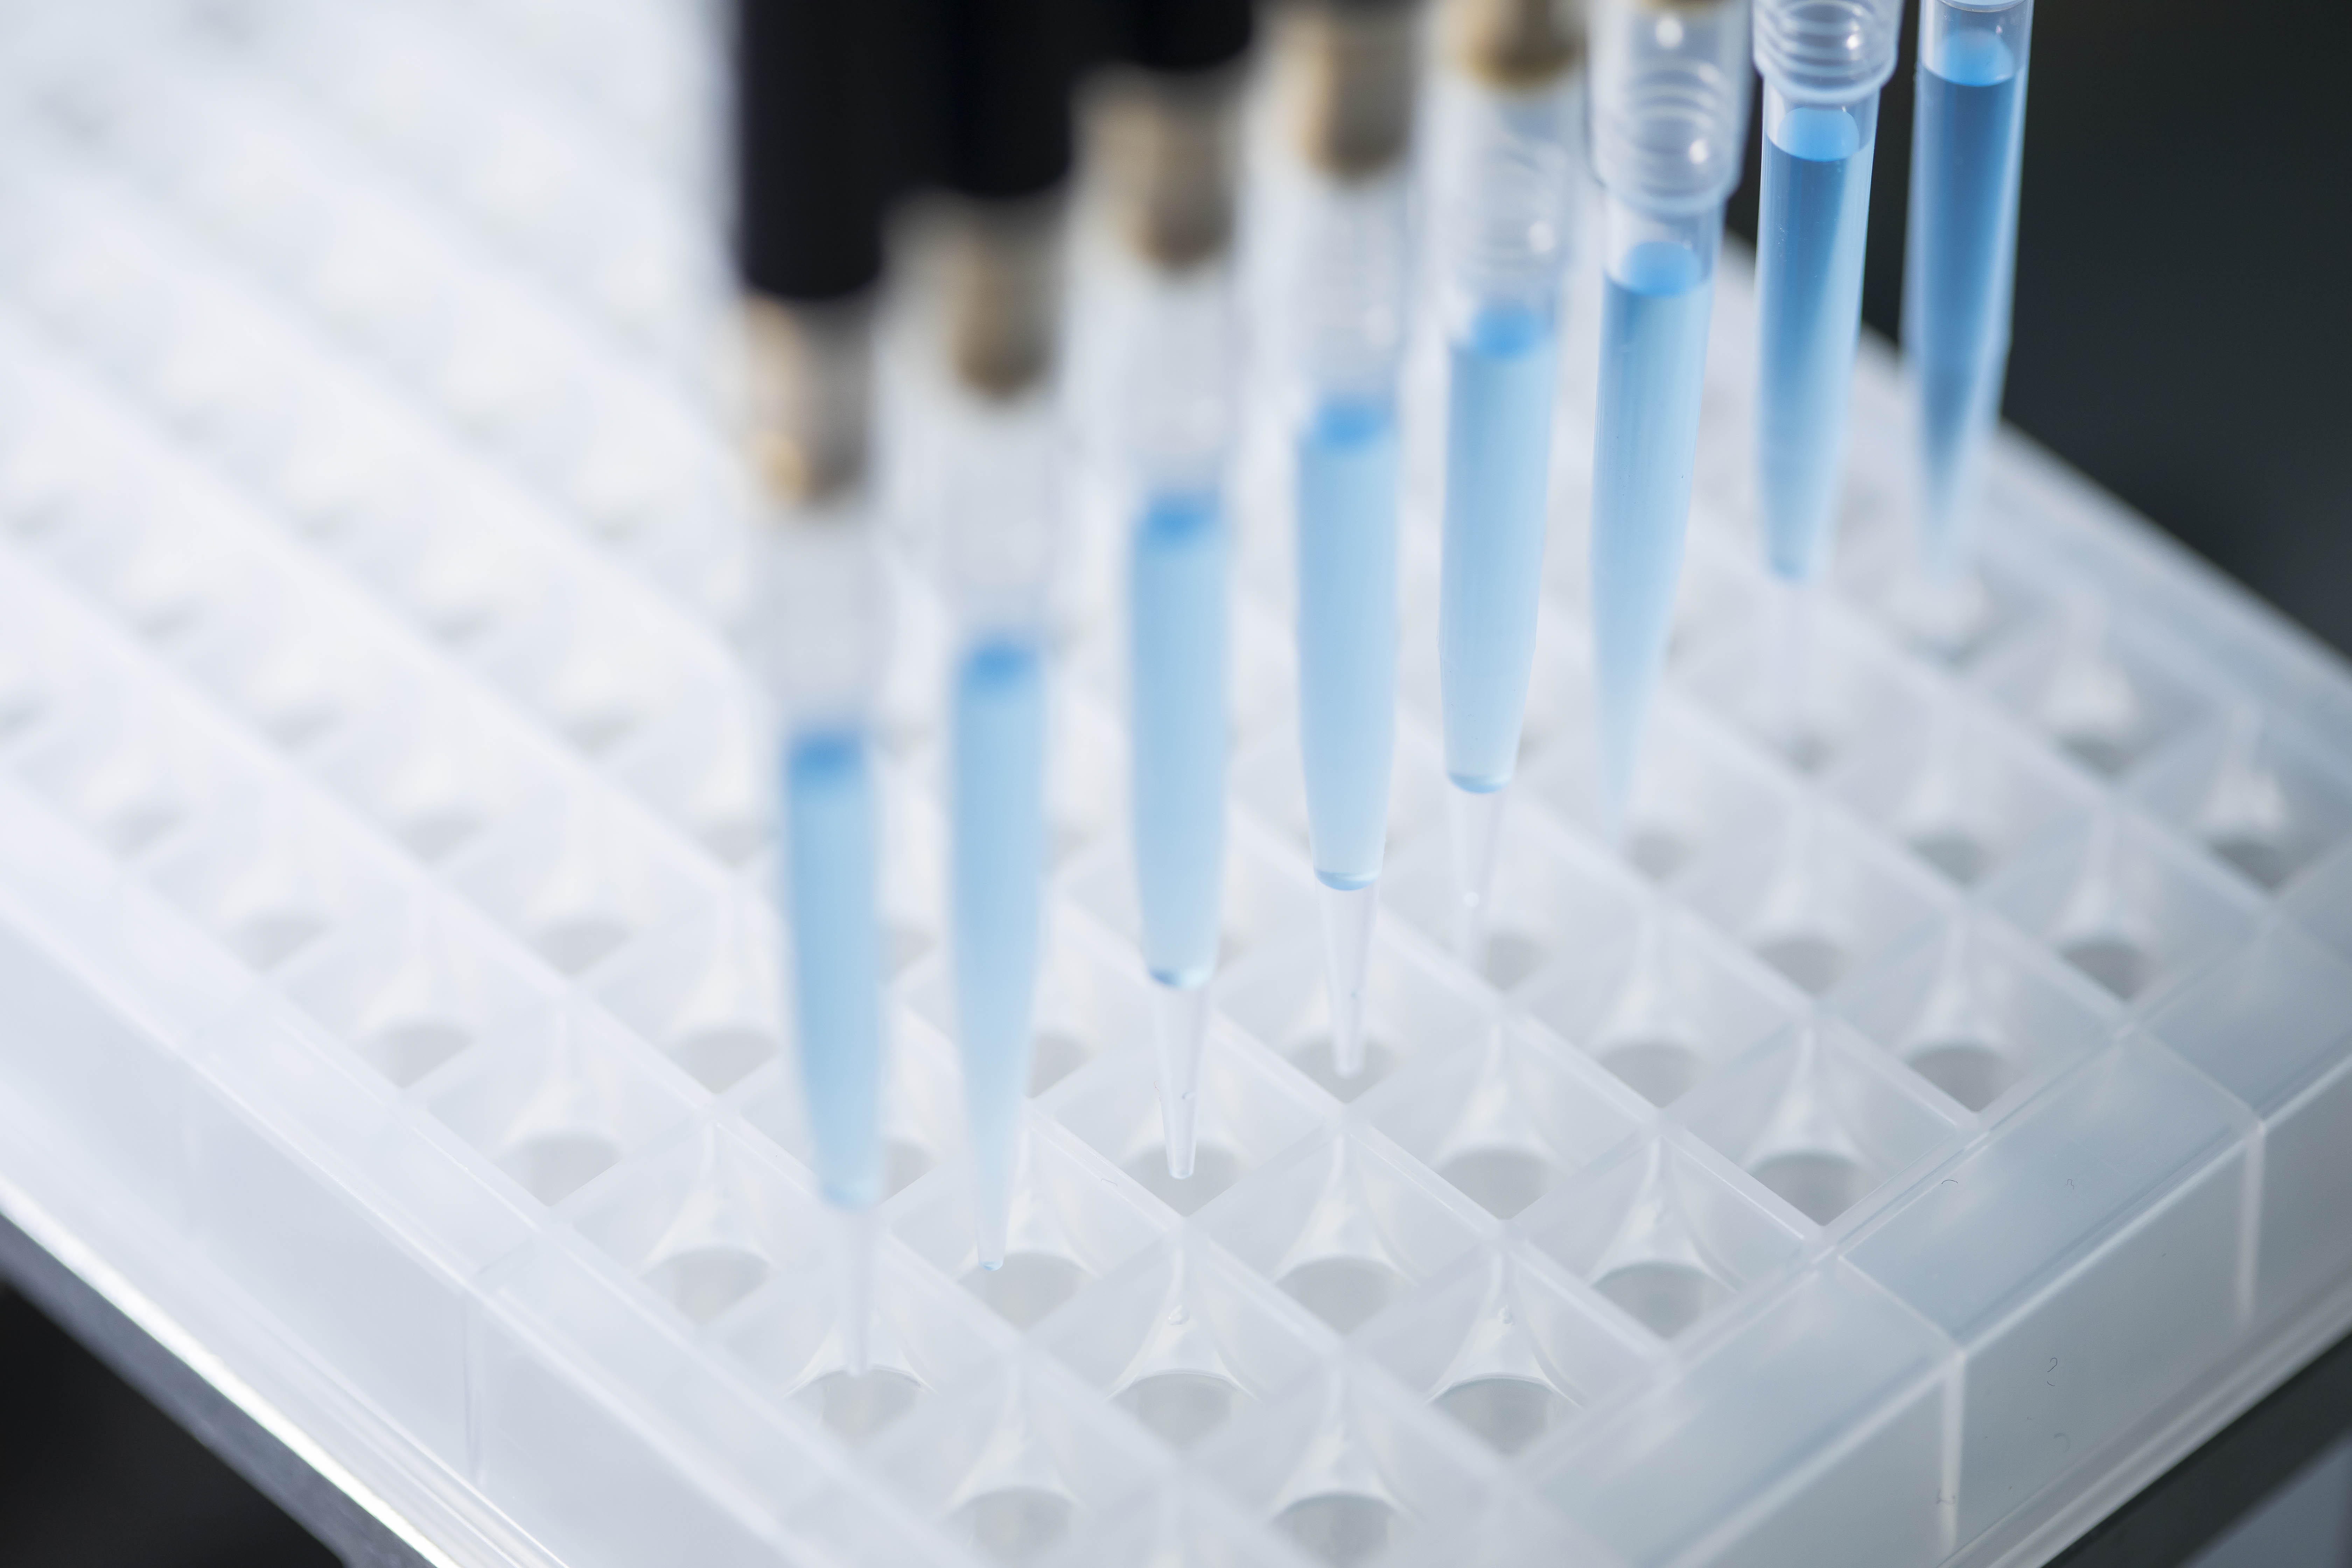 Blood samples are added to the microtiter plates with a ripette to perform rapid corona tests. (Photo: Matthias Baumgartner Vi-deophotography)